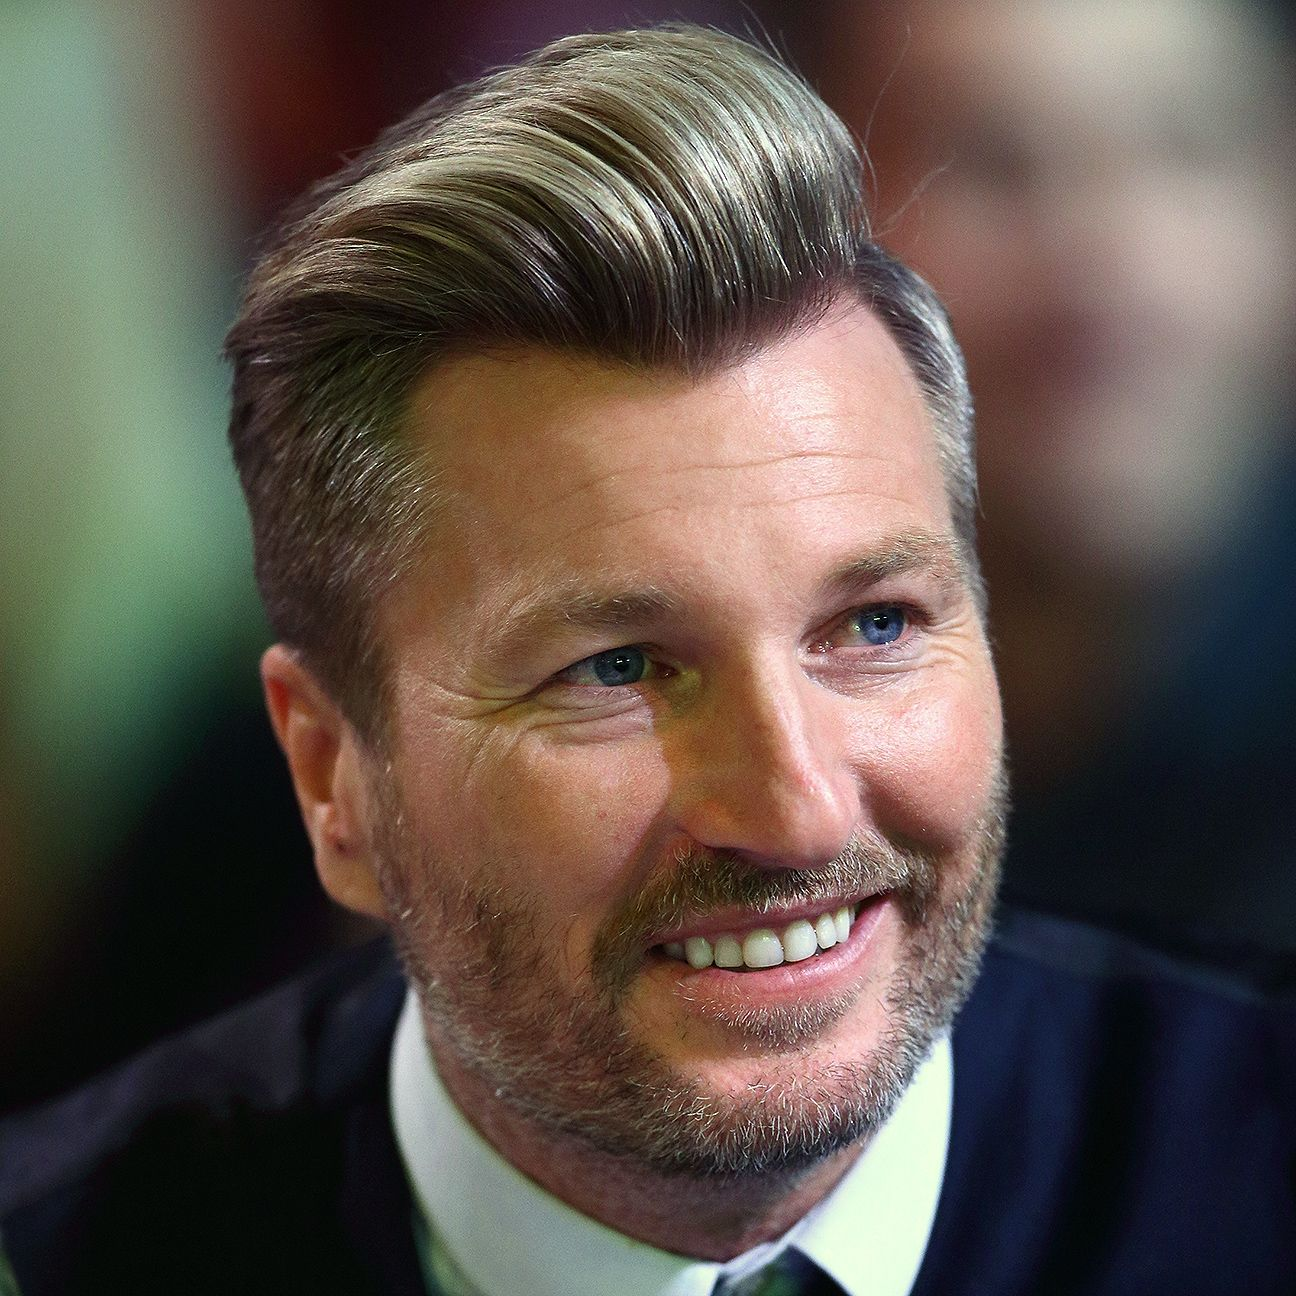 Former player Robbie Savage currently works as a football pundit.